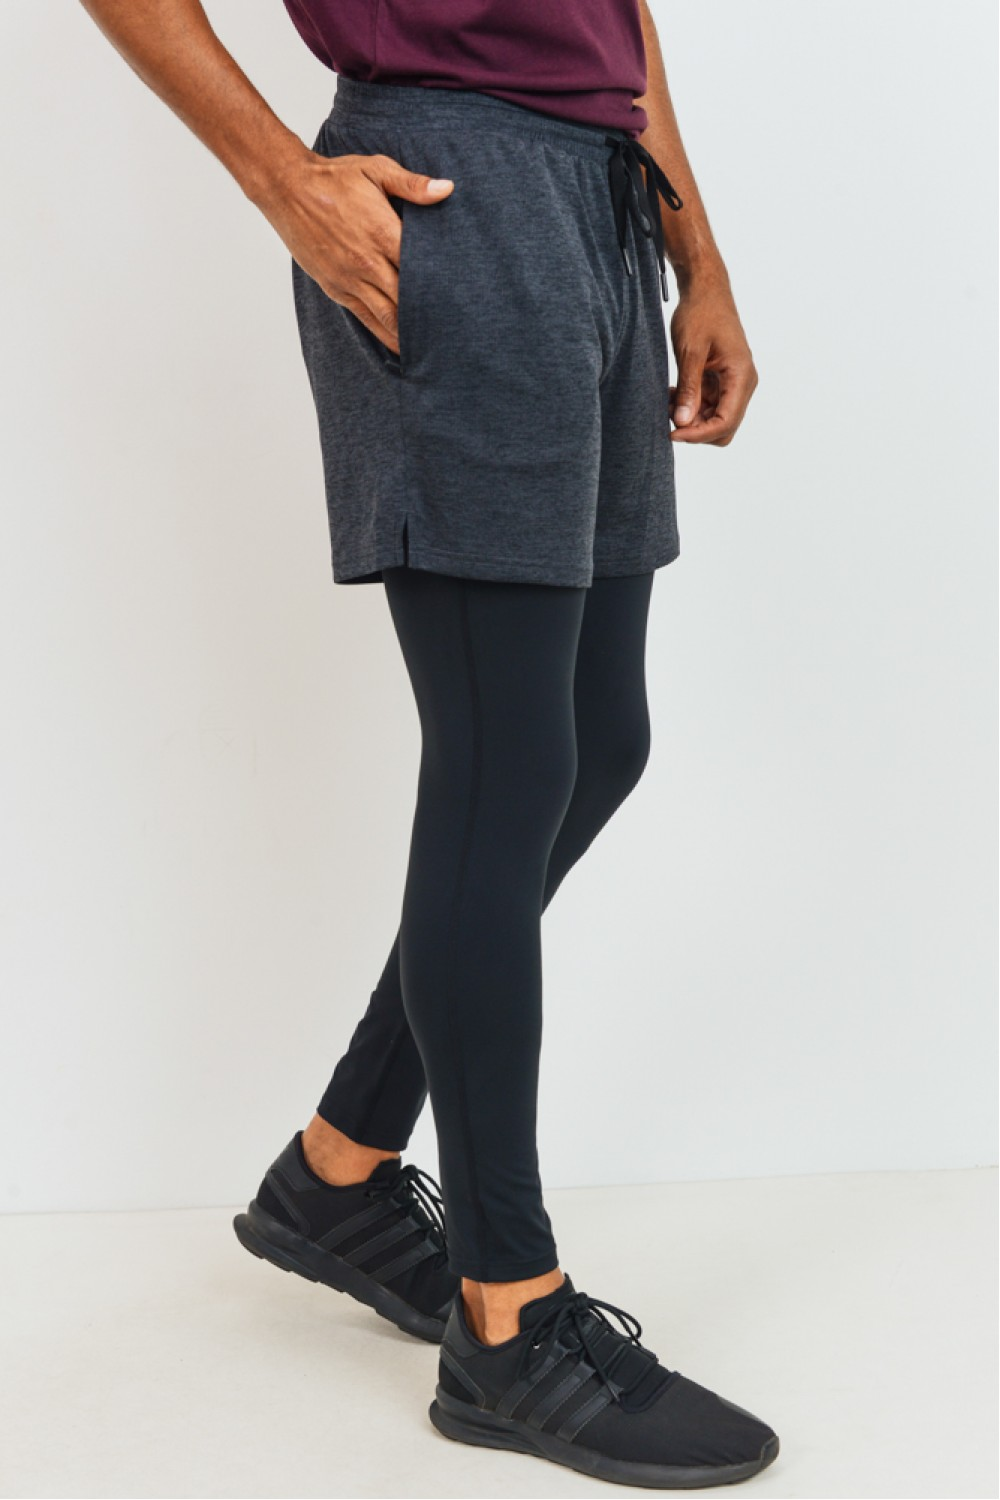 MB527<br/>Mono B MEN - 2 in 1 Active Shorts with Fitted Leggings Combo (MB527)